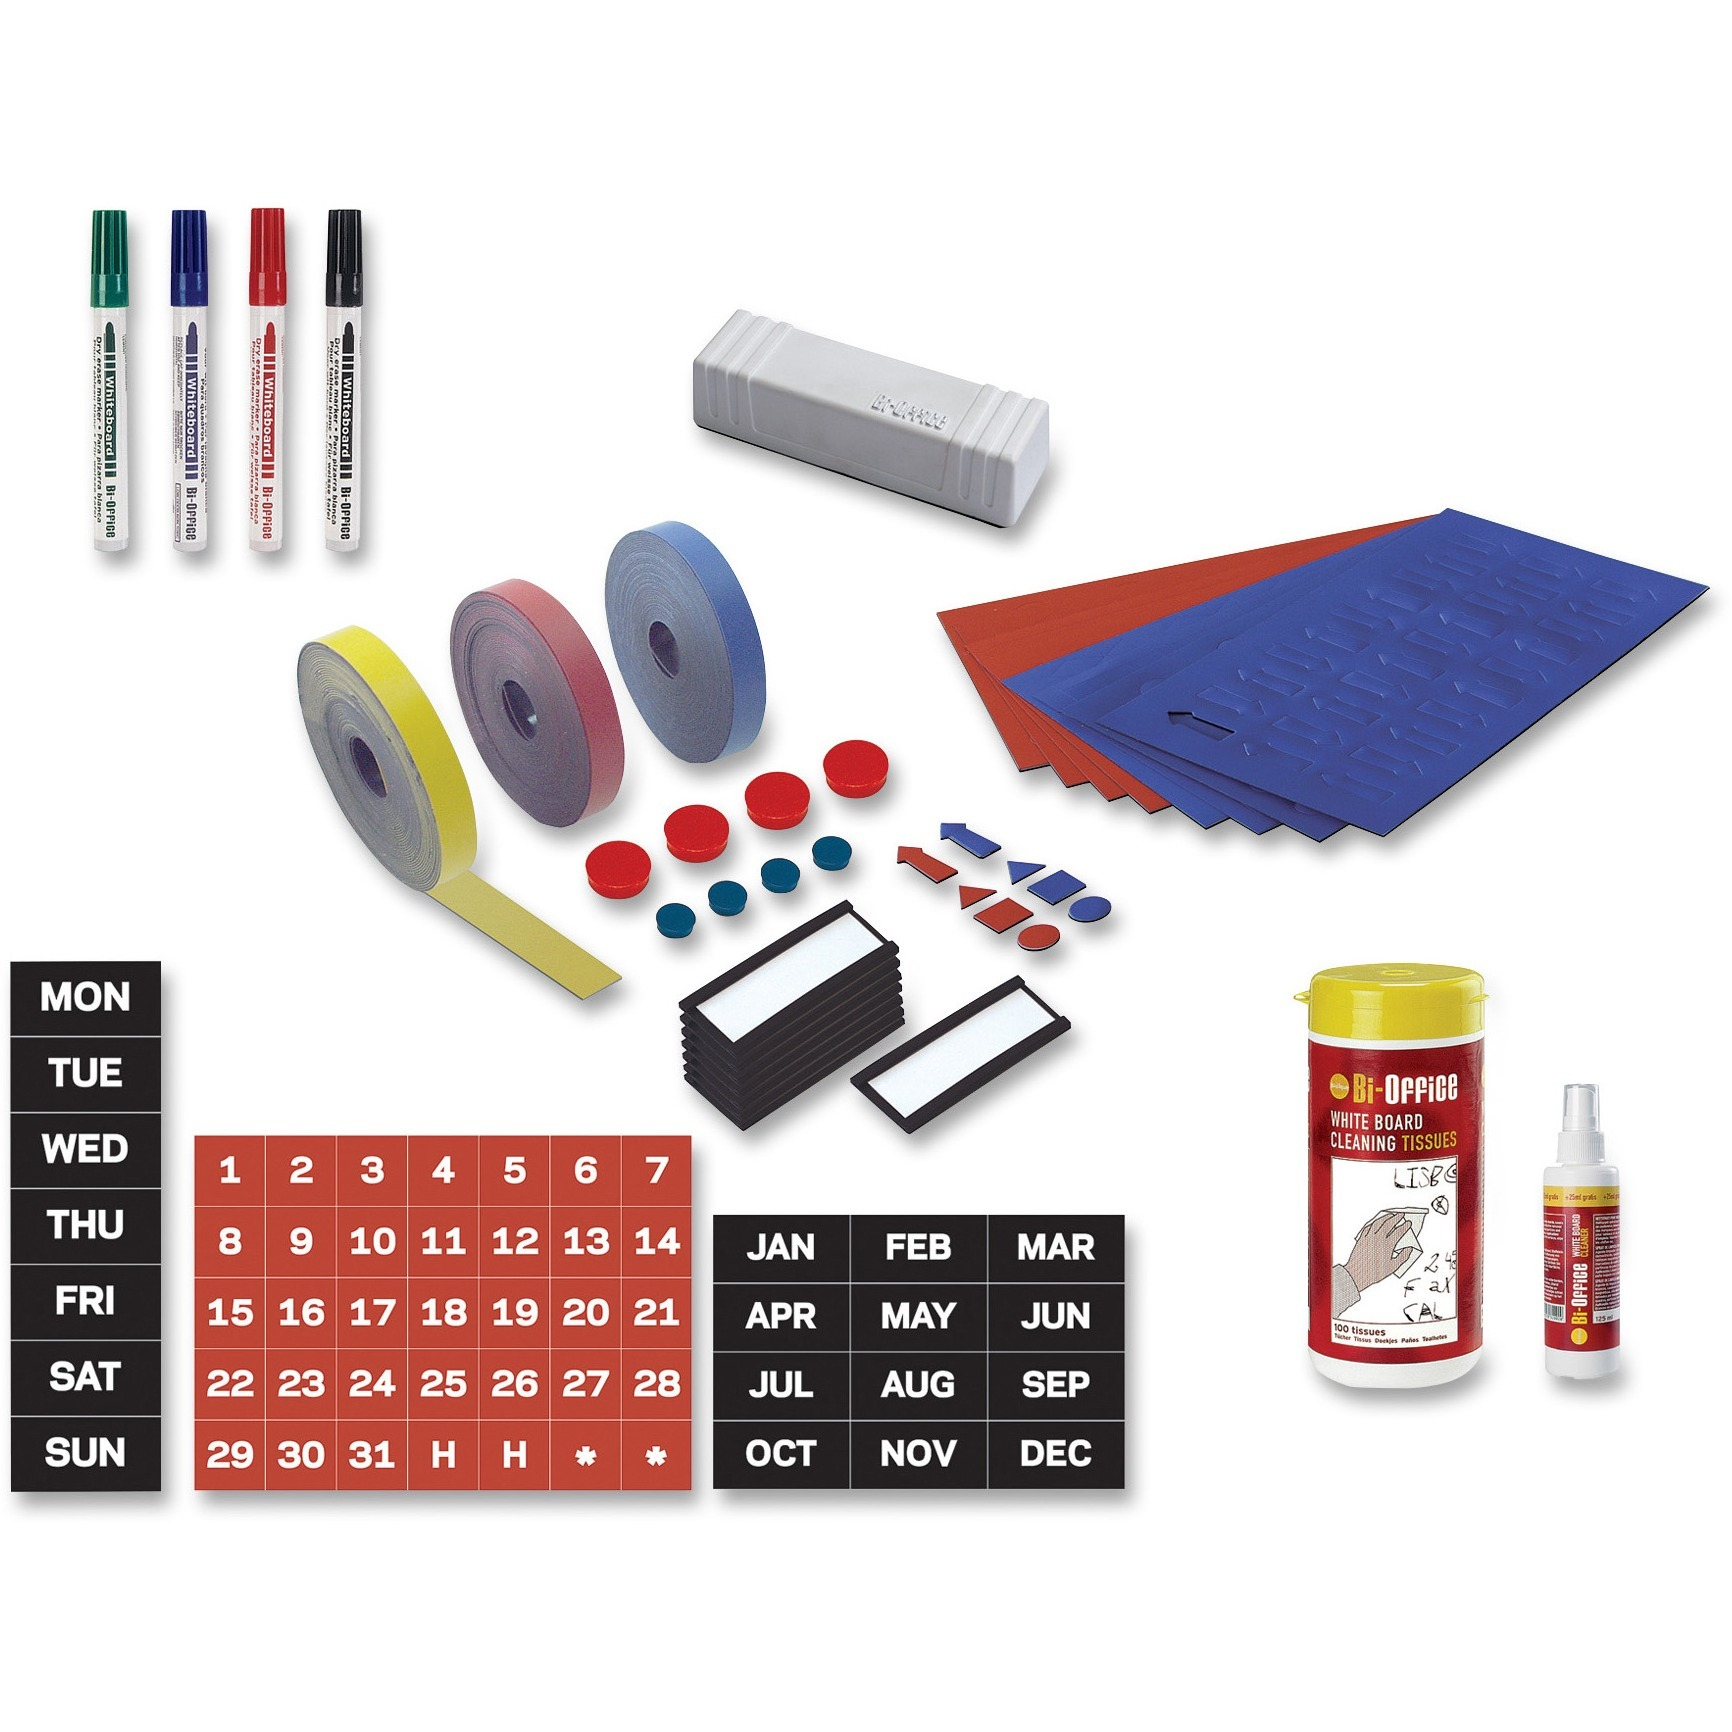 MasterVision, BVCKT1317, MV Prof. Magnetic Board Accessory Kit, 1 Each